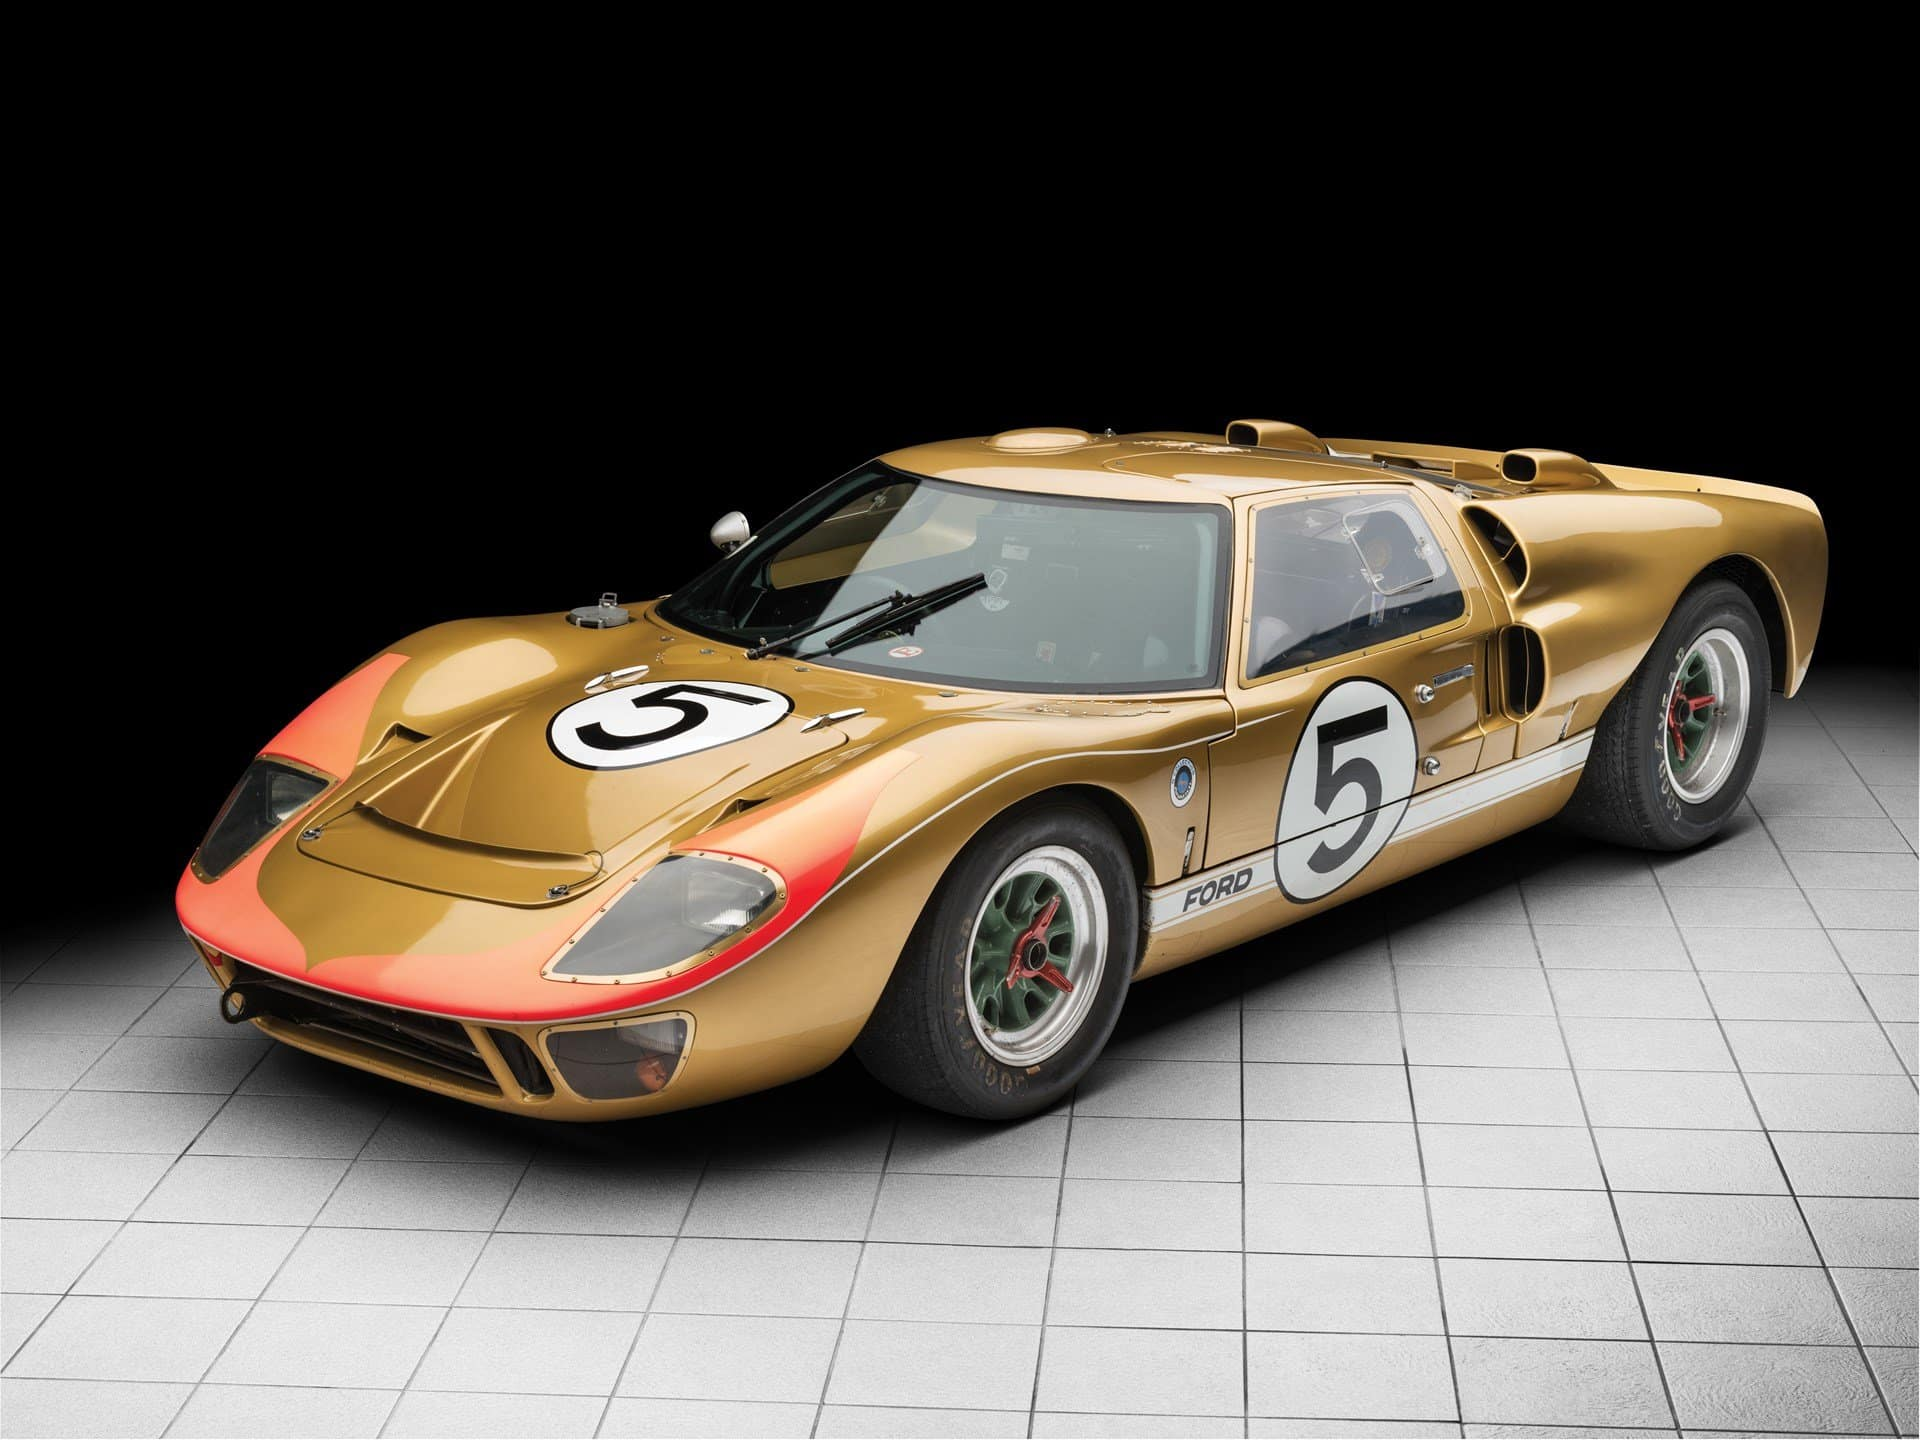 The most expensive Ford ever sold